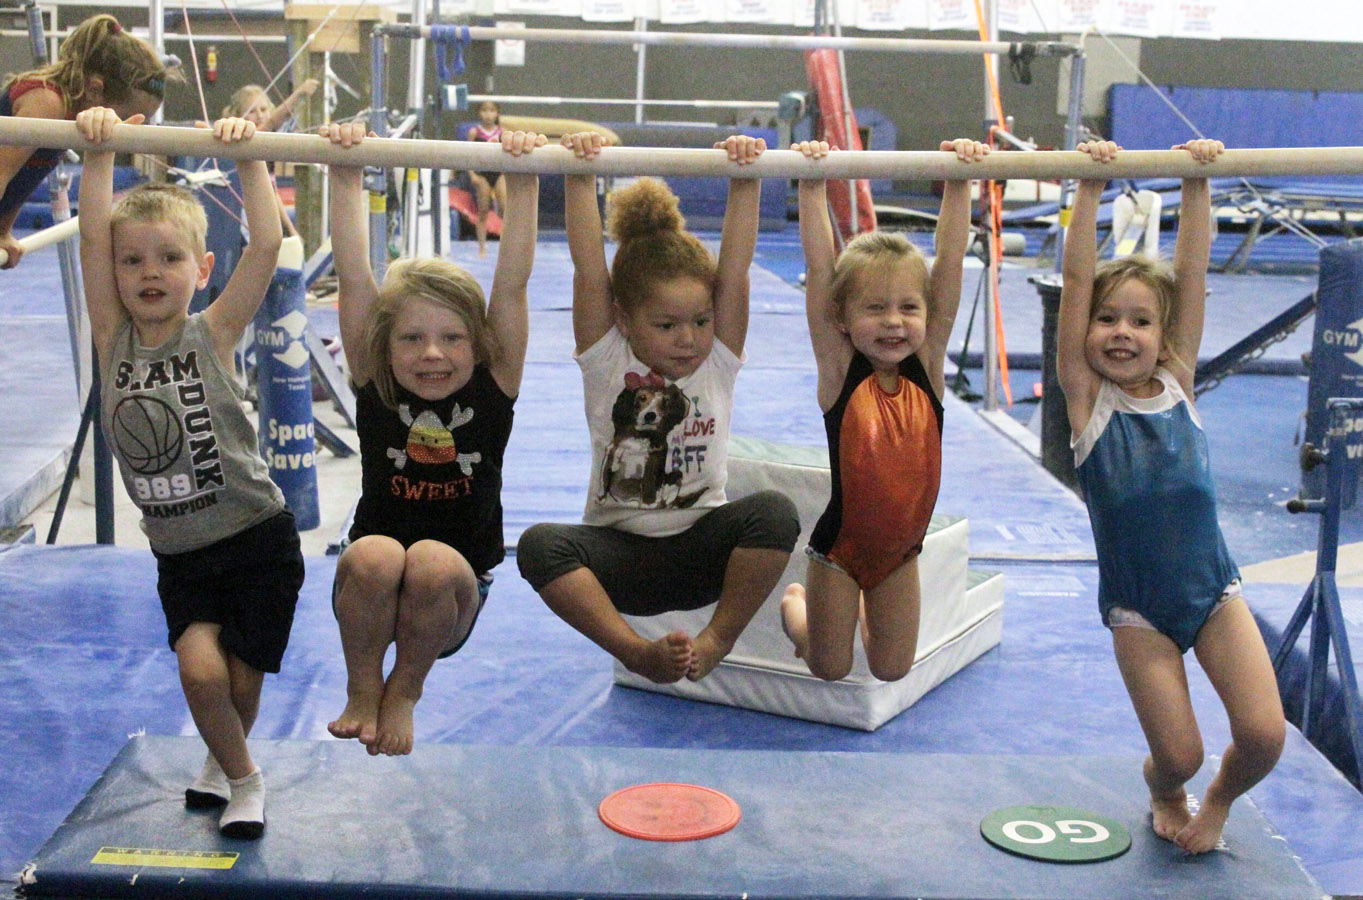 Kids hang from a gym bar.